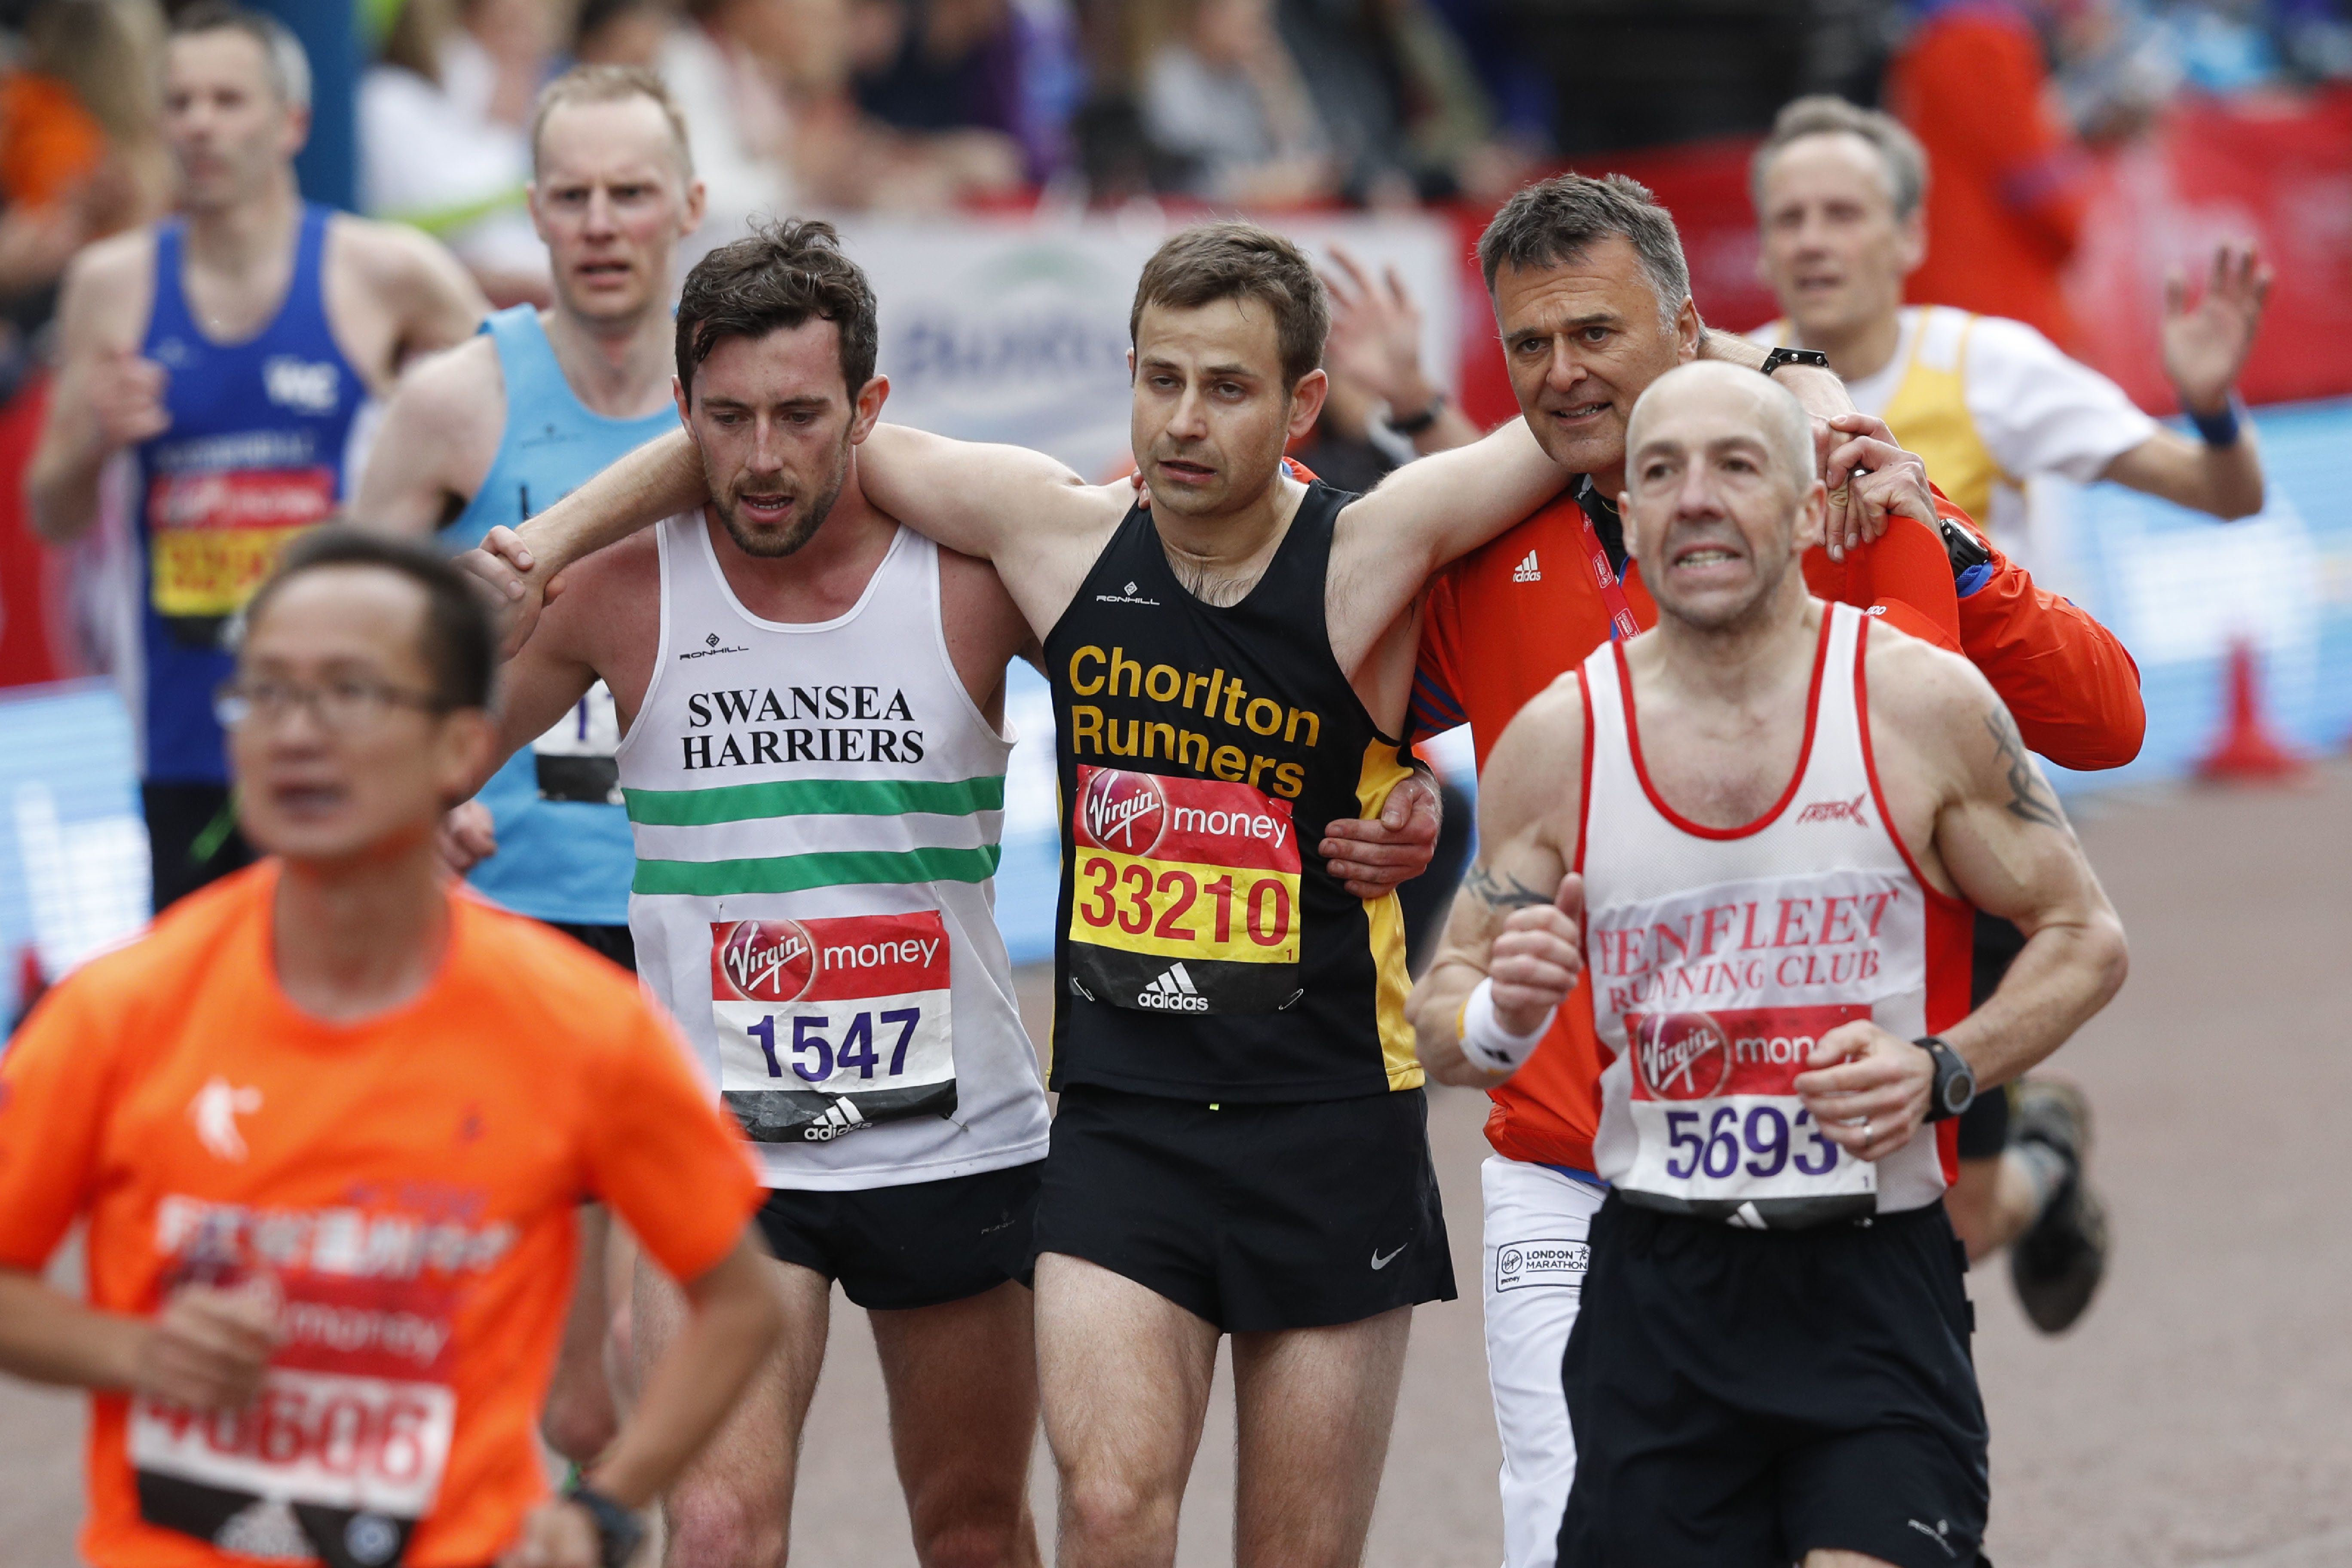 Matthew Rees (L) of Swansea Harriers helps David Wyeth (C) of Chorlton Runners reach the finish line during the London marathon on April 23, 2017 in London. / AFP PHOTO / Adrian DENNIS        (Photo credit should read ADRIAN DENNIS/AFP/Getty Images)